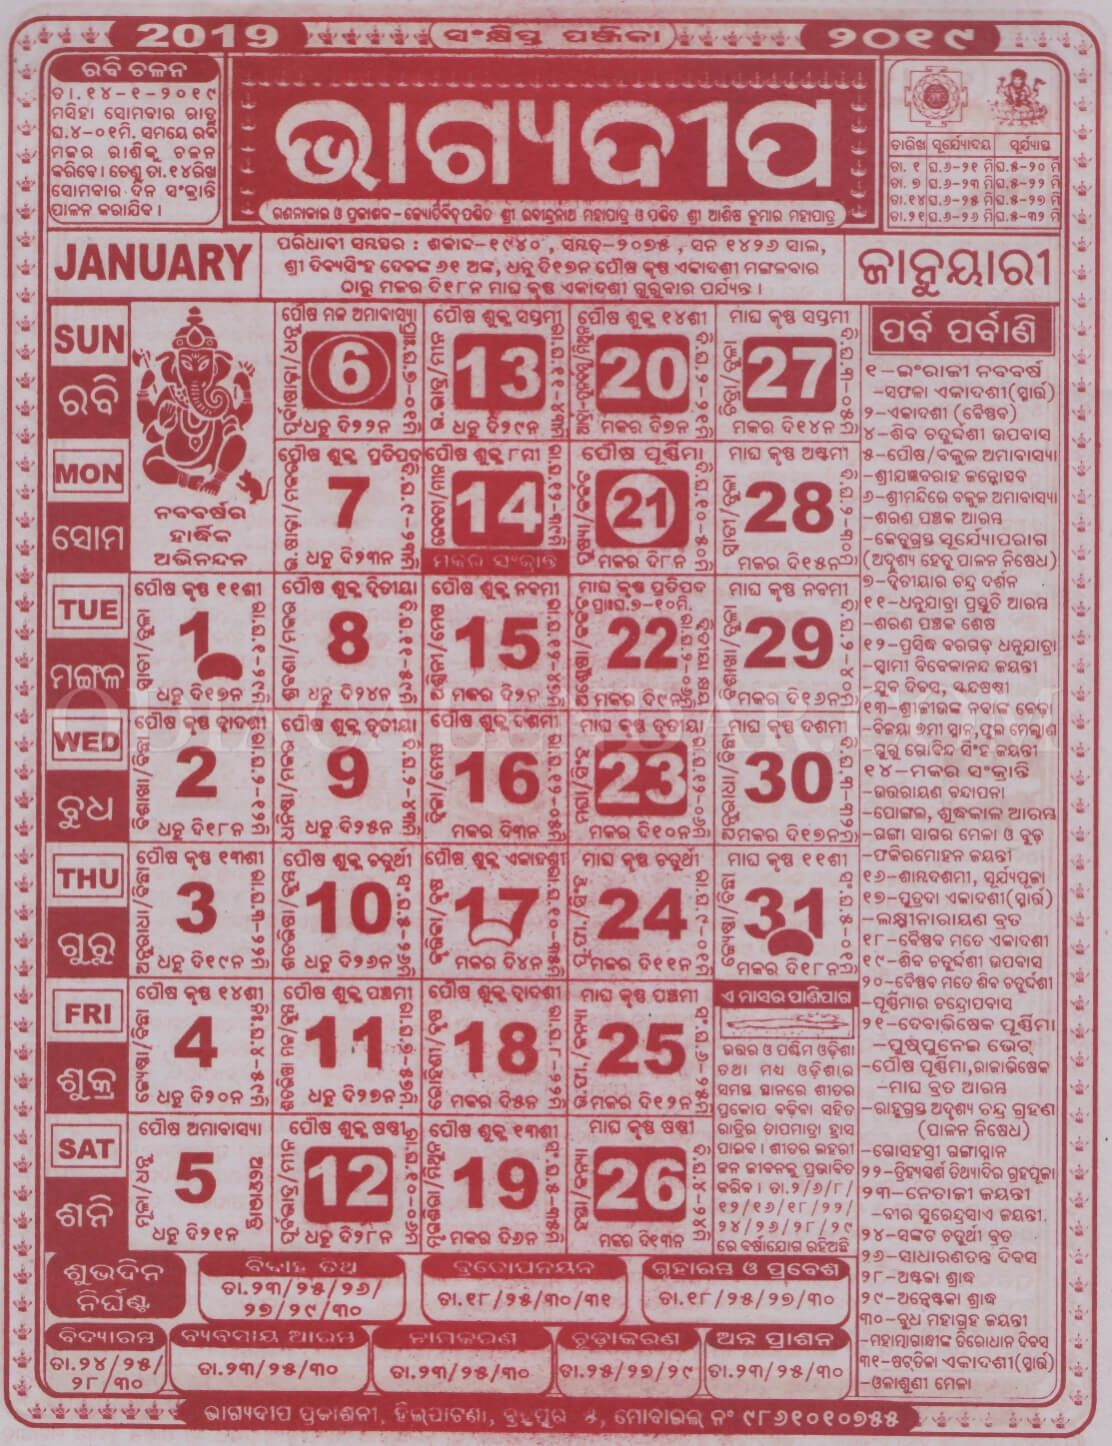 Bhagyadeep Calendar January 2019 | Calendar, Free, High with regard to July 2020 Odia Calendar